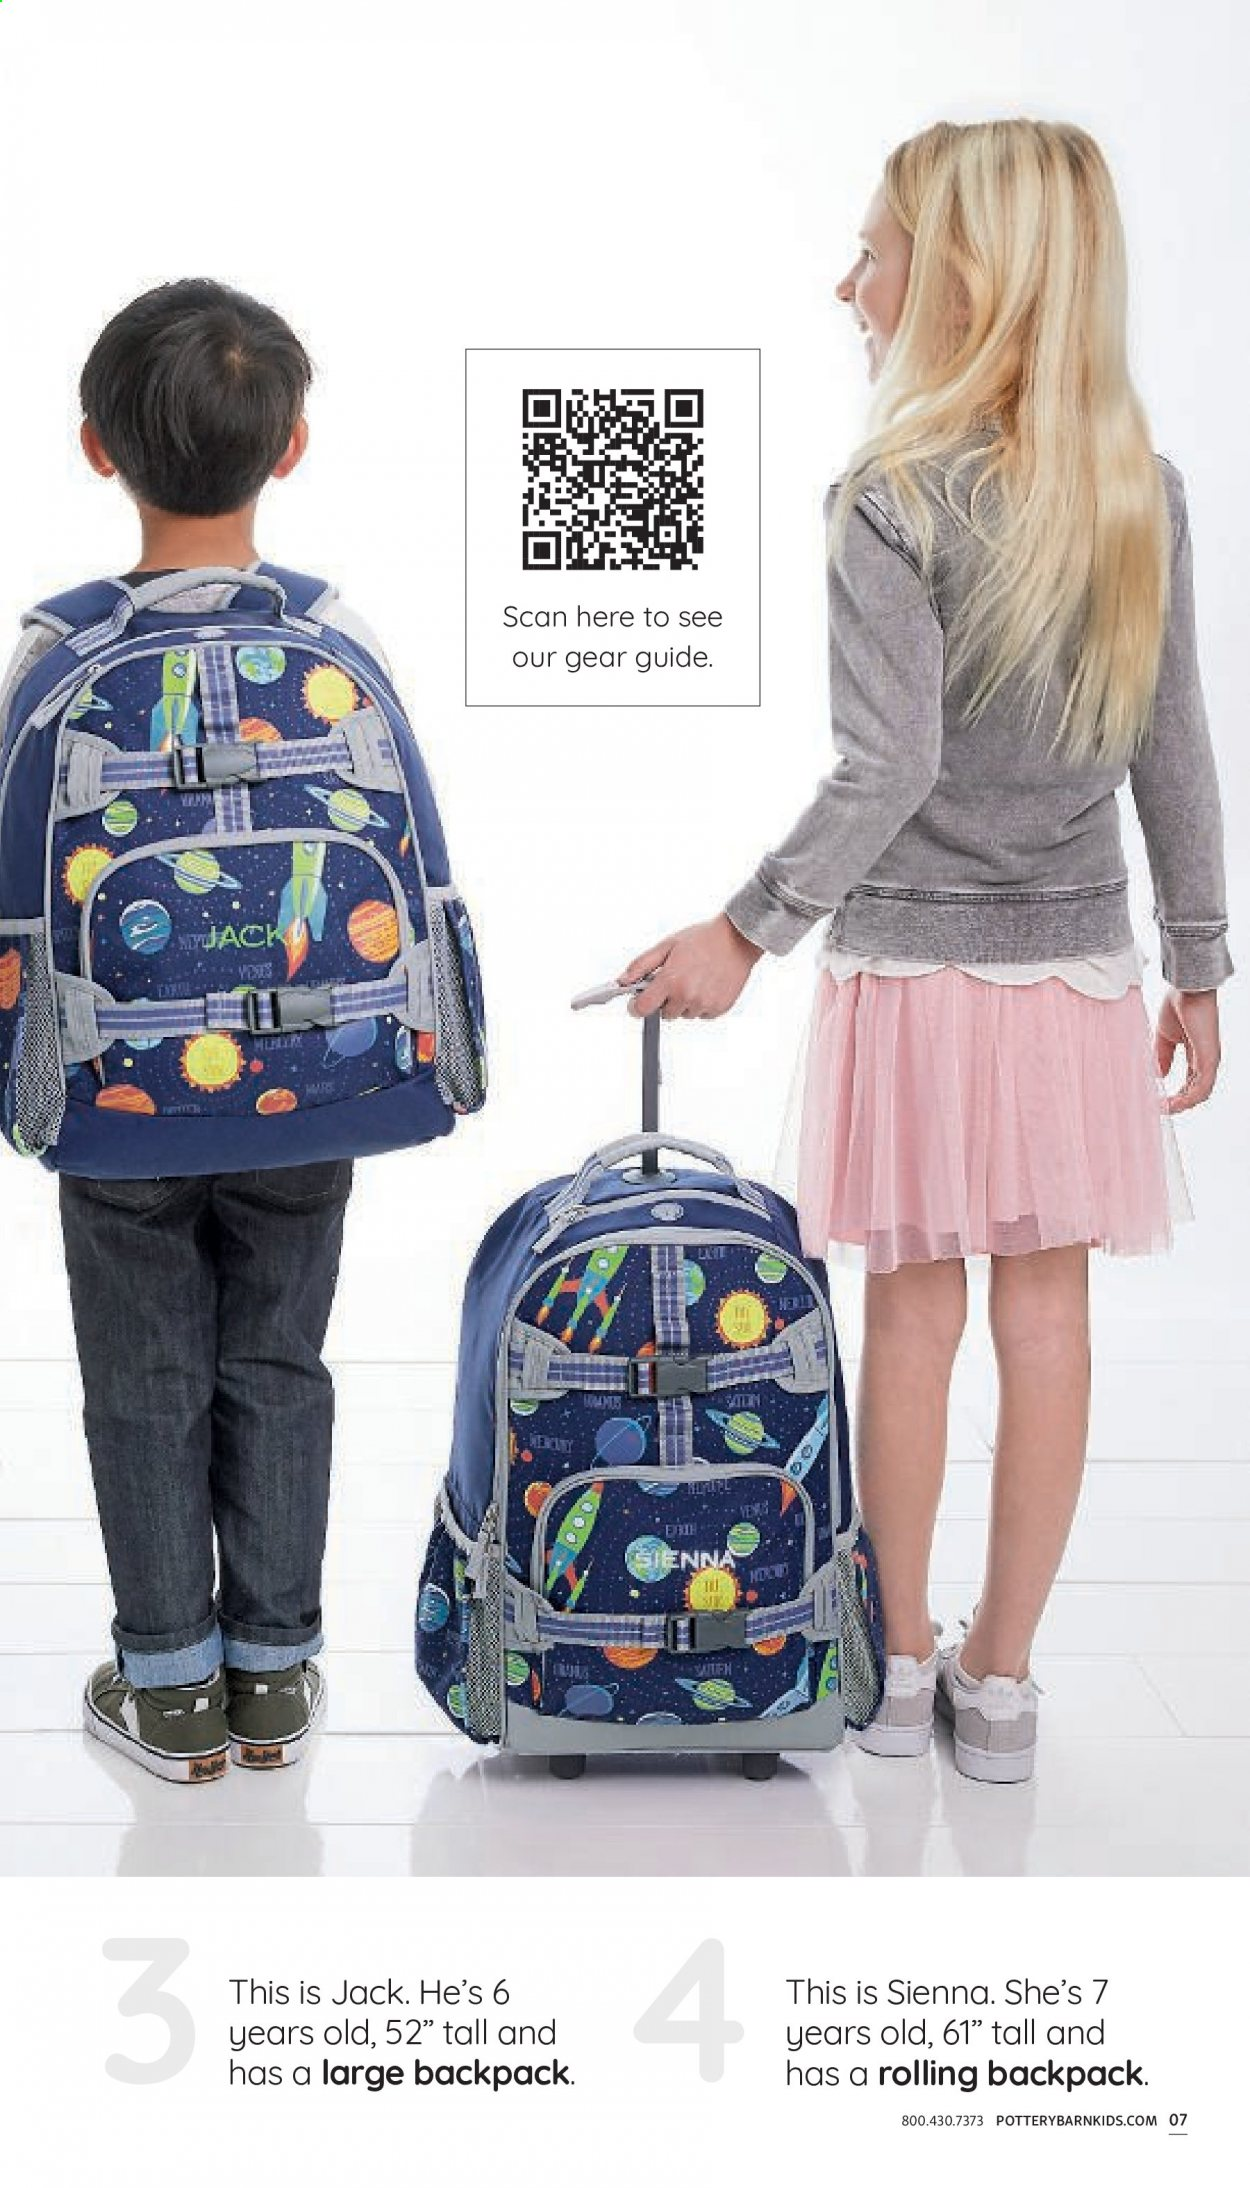 Pottery Barn Ad Kids - Back to School 2021 - Page 7